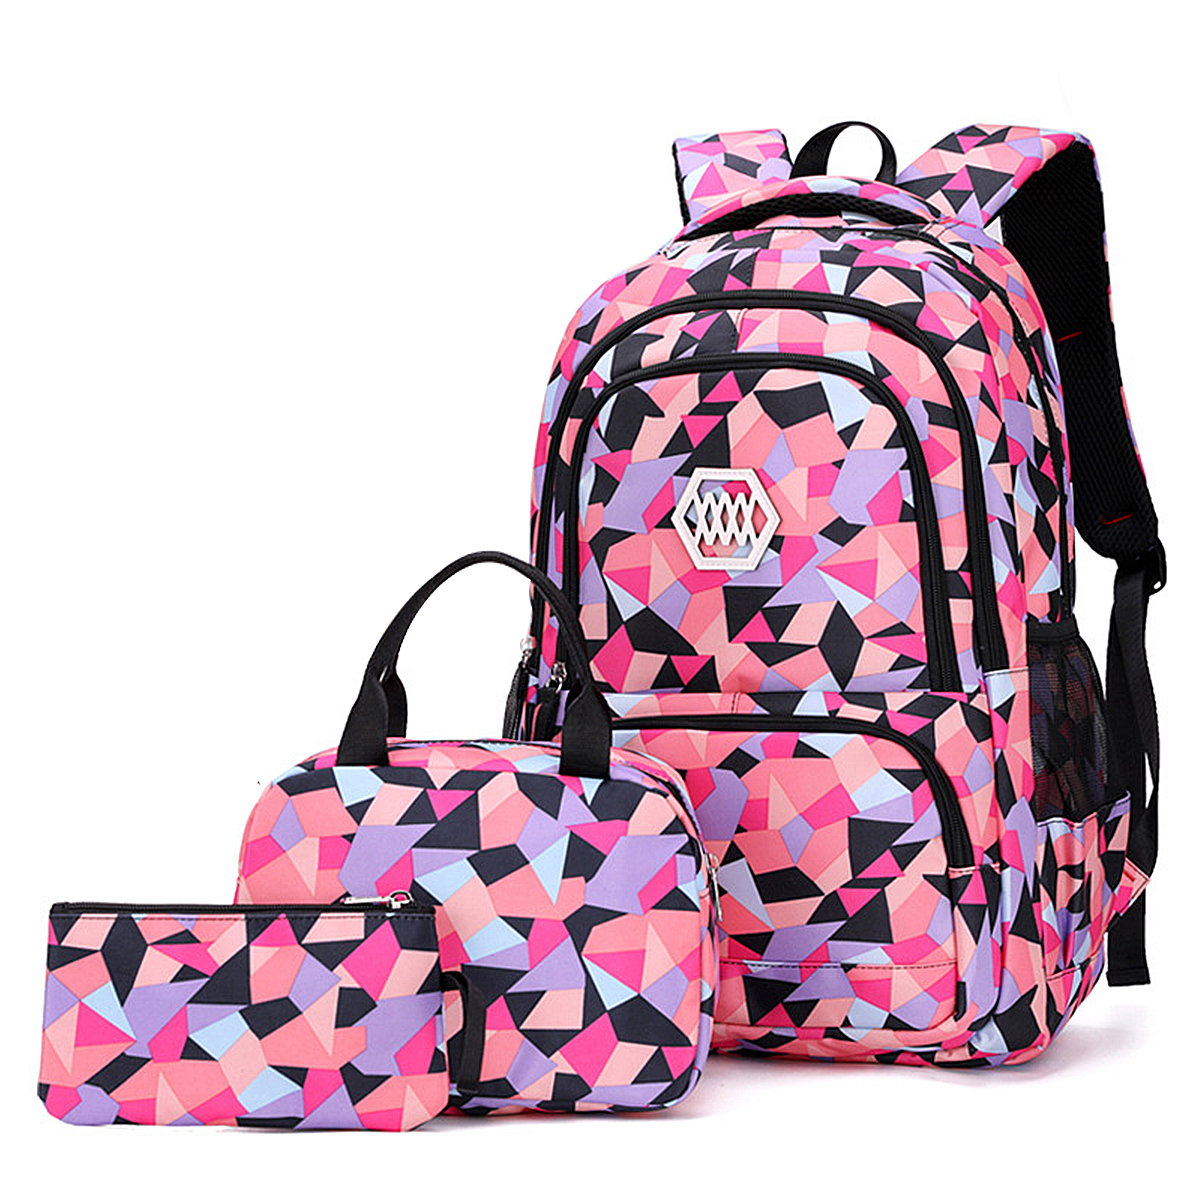 3pcs Kids Grils Lightweight Primary Students Bookbag Backpack Nylon Shoulder Bag